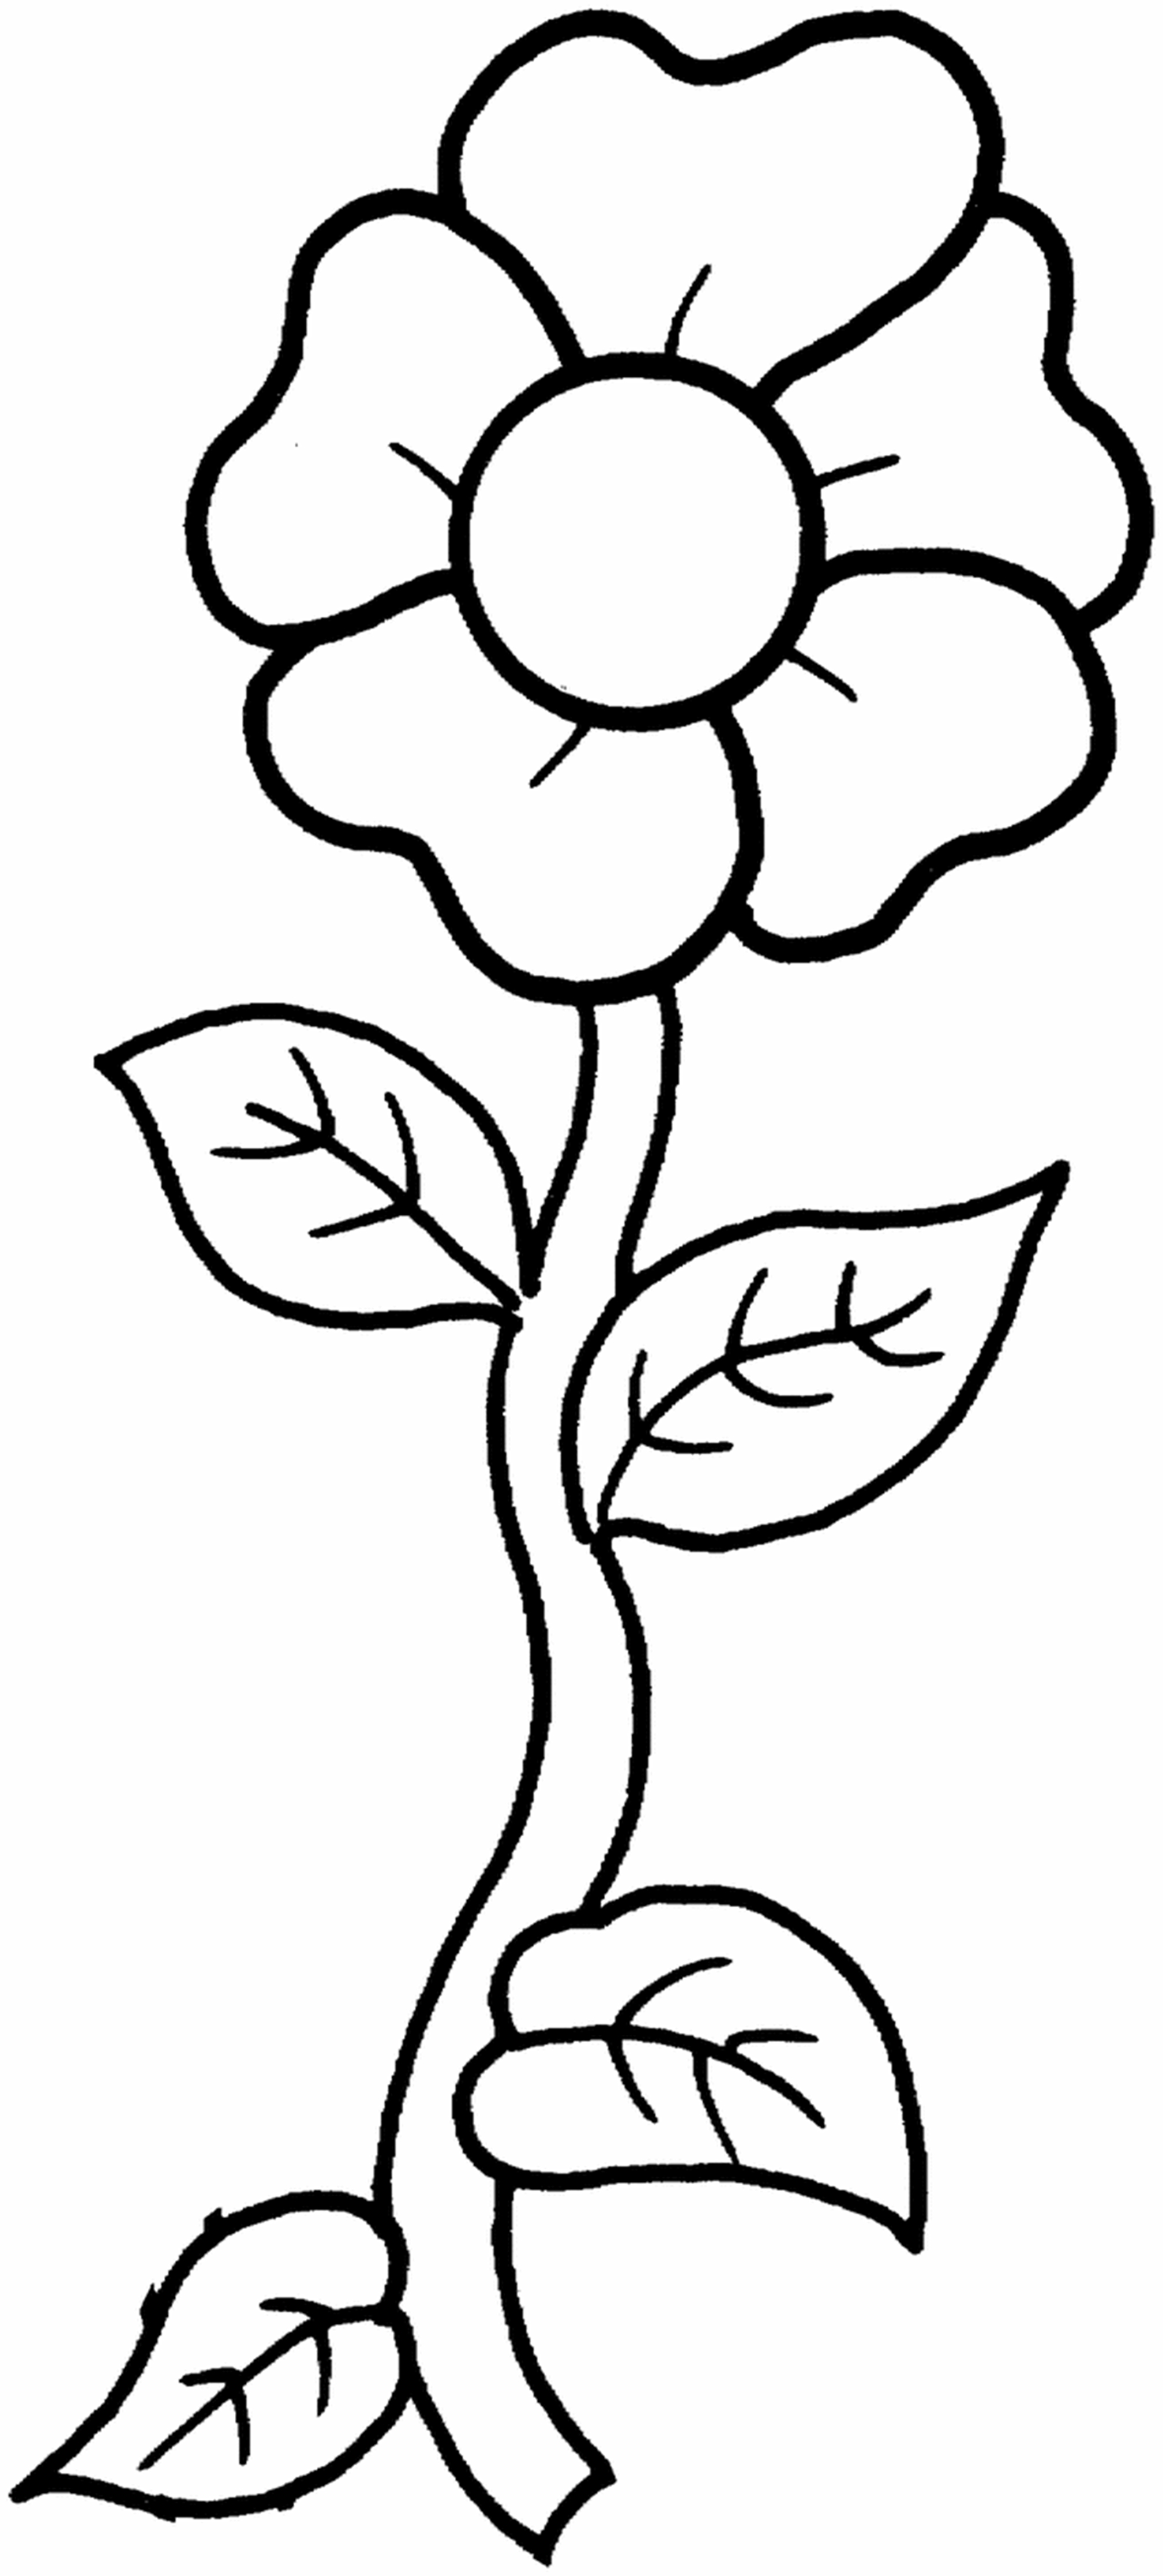 colouring flowers free printable flower coloring pages for kids best flowers colouring 1 1